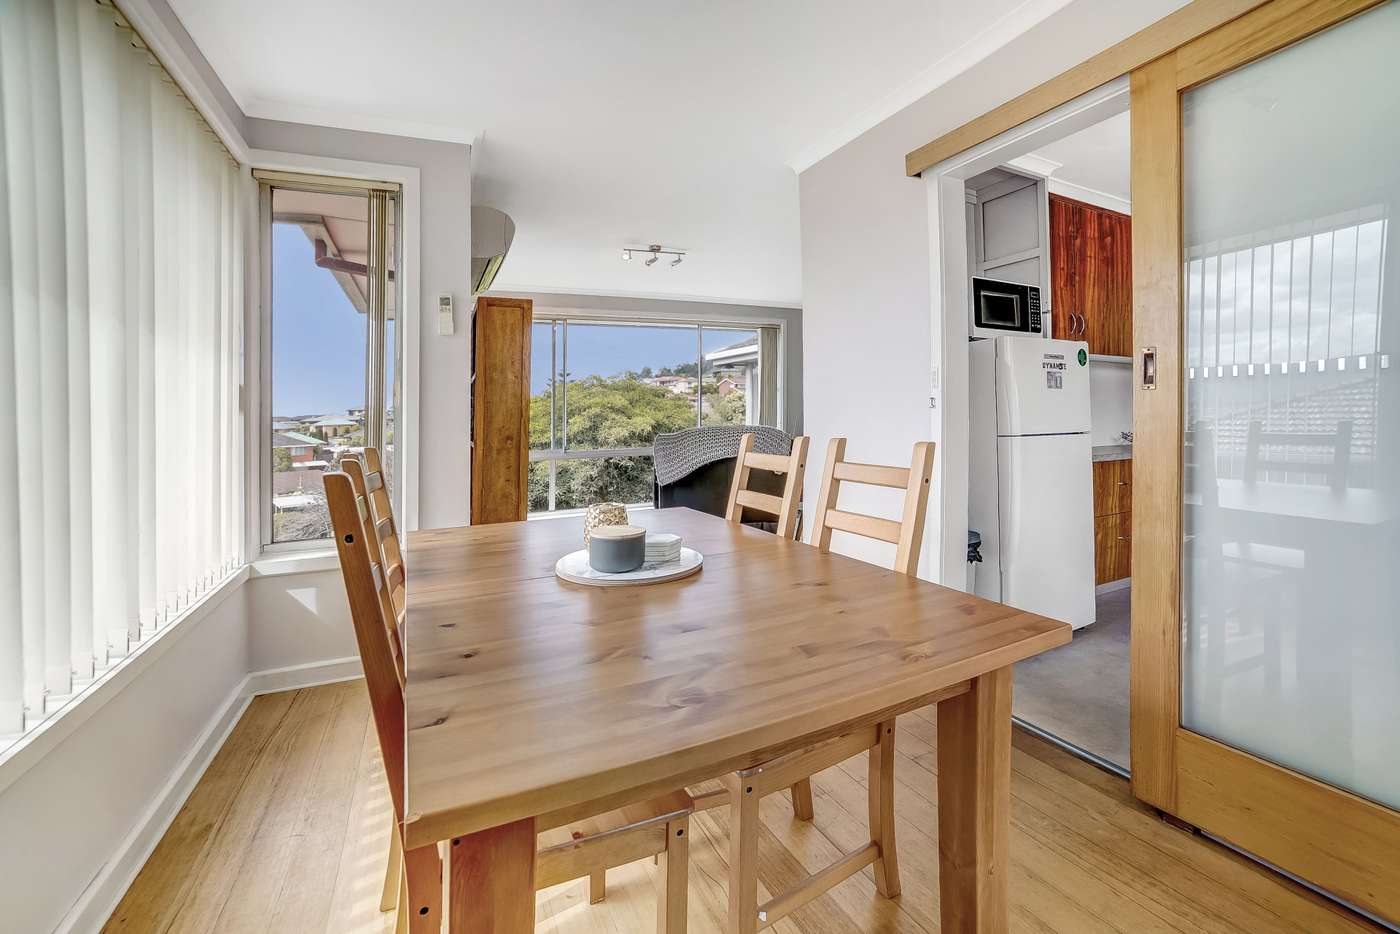 Sixth view of Homely house listing, 8 Winifred Place, Austins Ferry TAS 7011